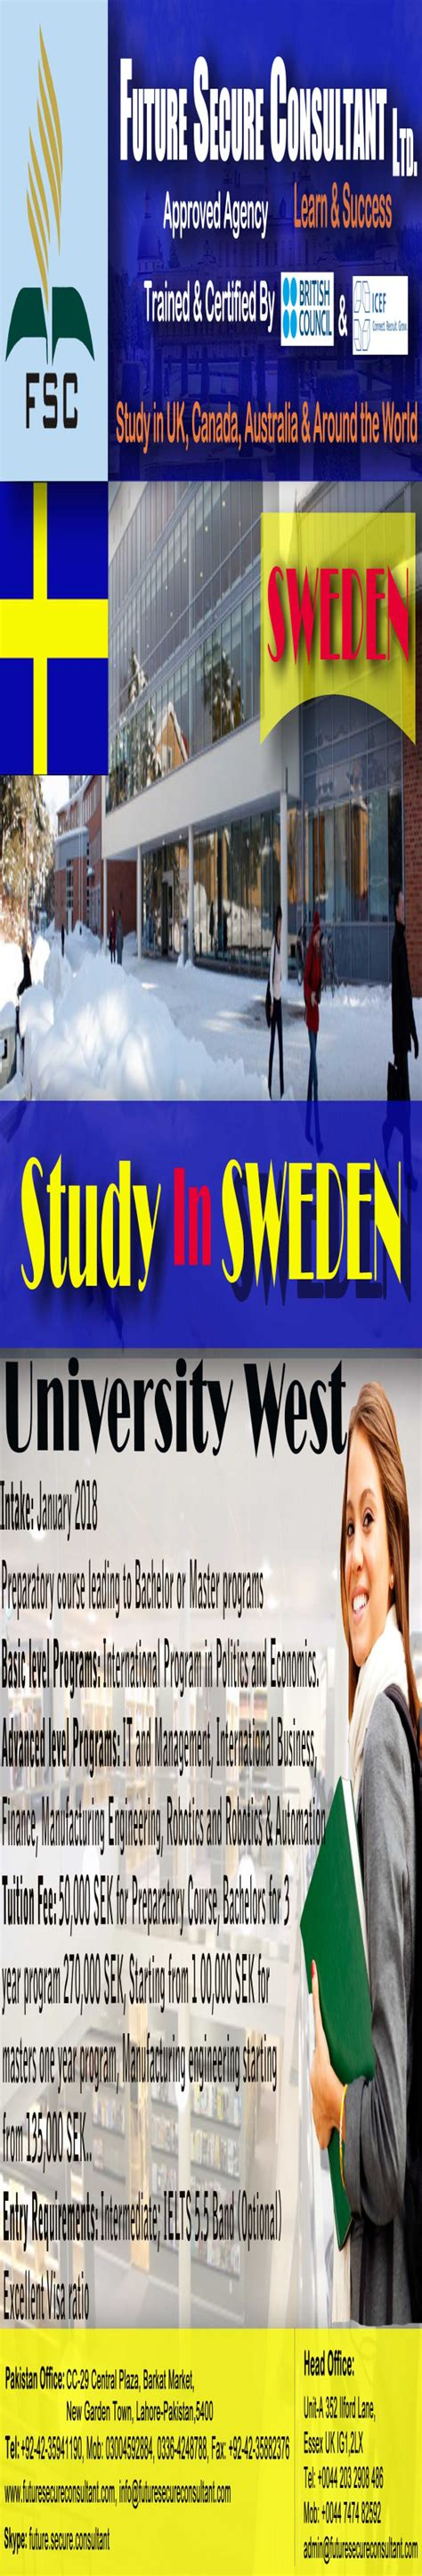 Mba In Sweden Without Ielts by Study In Sweden Without Ielts